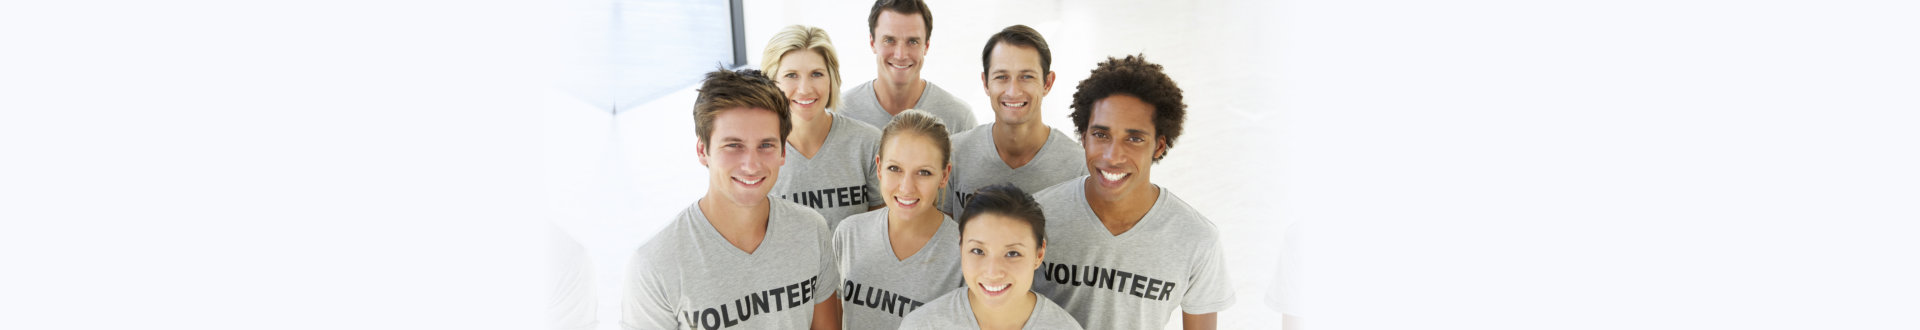 volunteers smiling